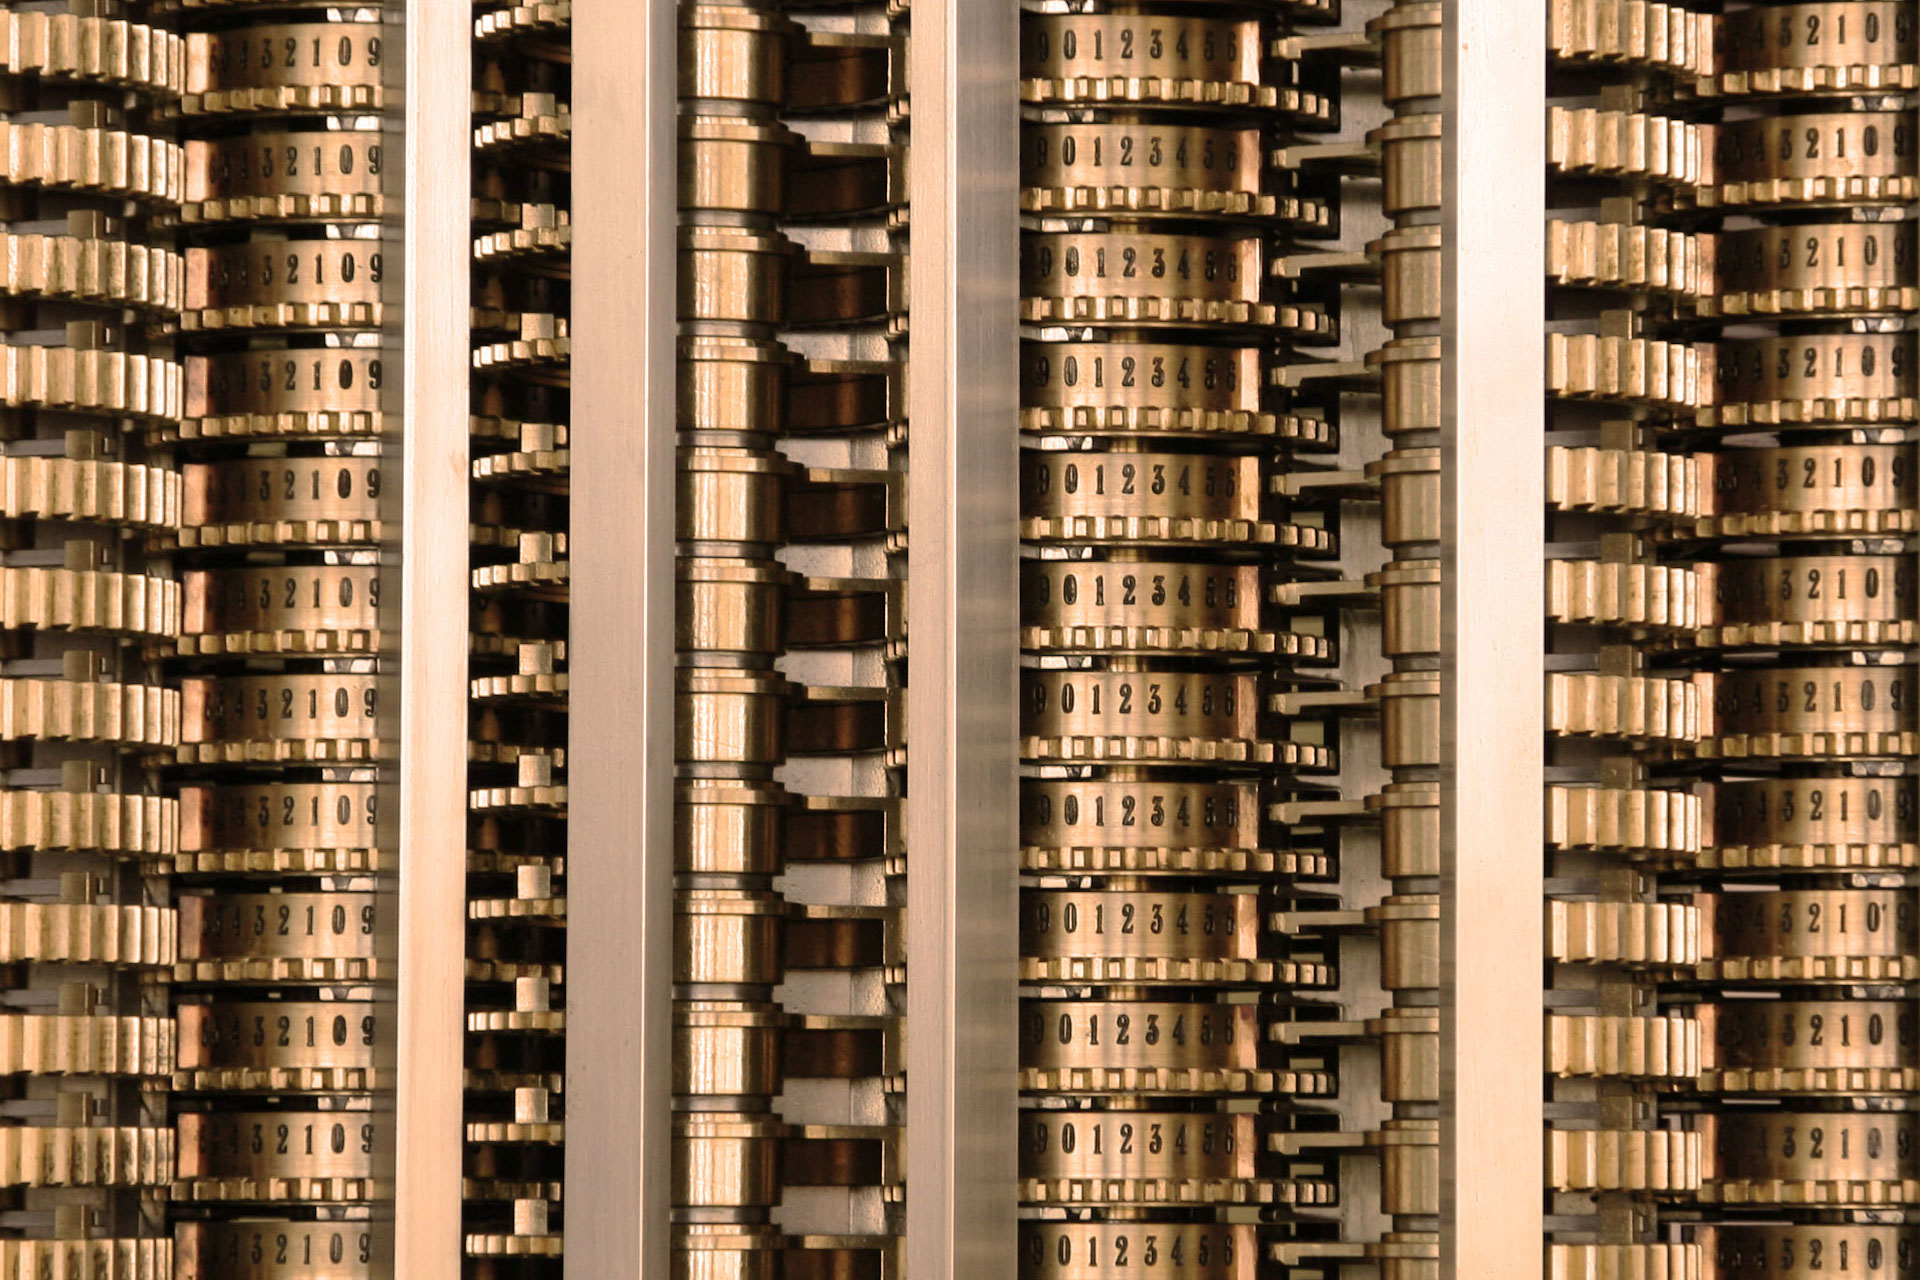 Babbage Difference Engine (Counter Detail)